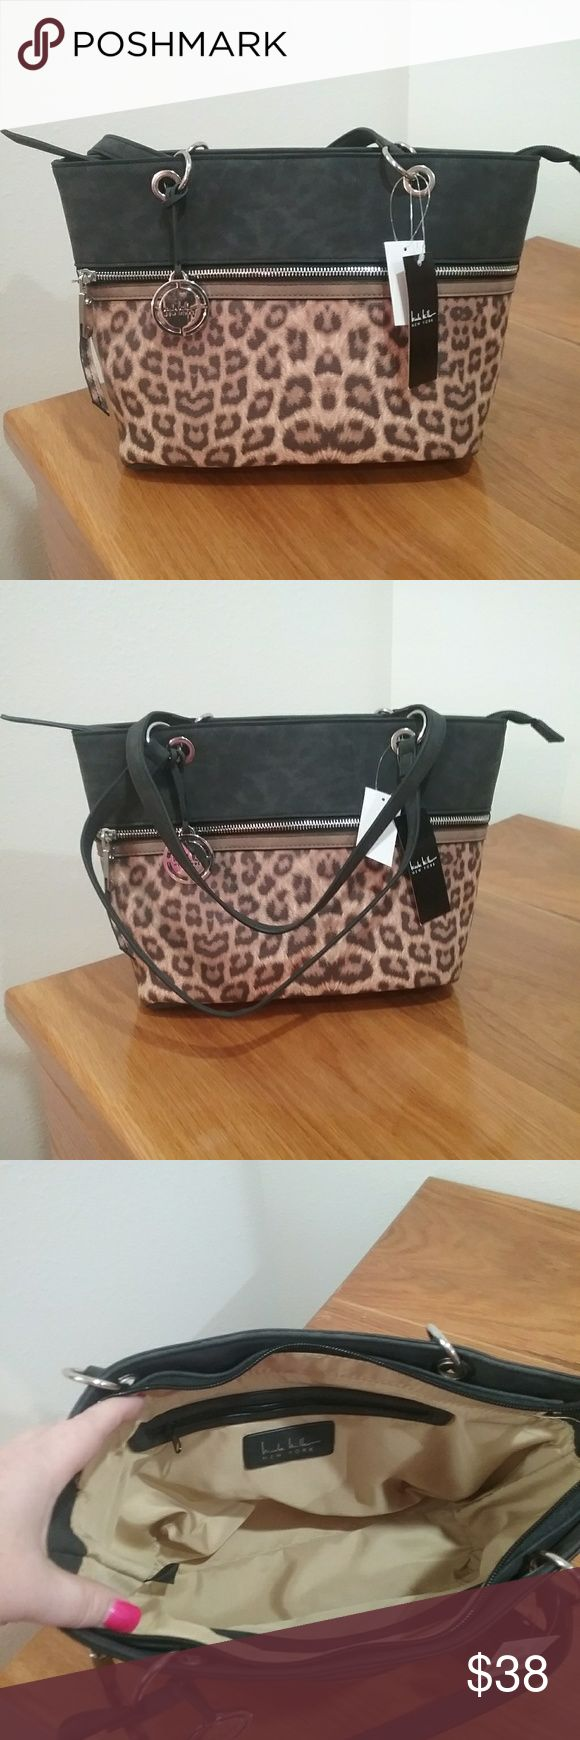 BNWT chic cheetah purse! Brand new Nicole Miller tote handbag in a nice cheetah/black print with zipper pouch across the front and back.  Inside is tan and black with small pouch and another zippered pocket.   Very classy and chic! Nicole Miller Bags Totes